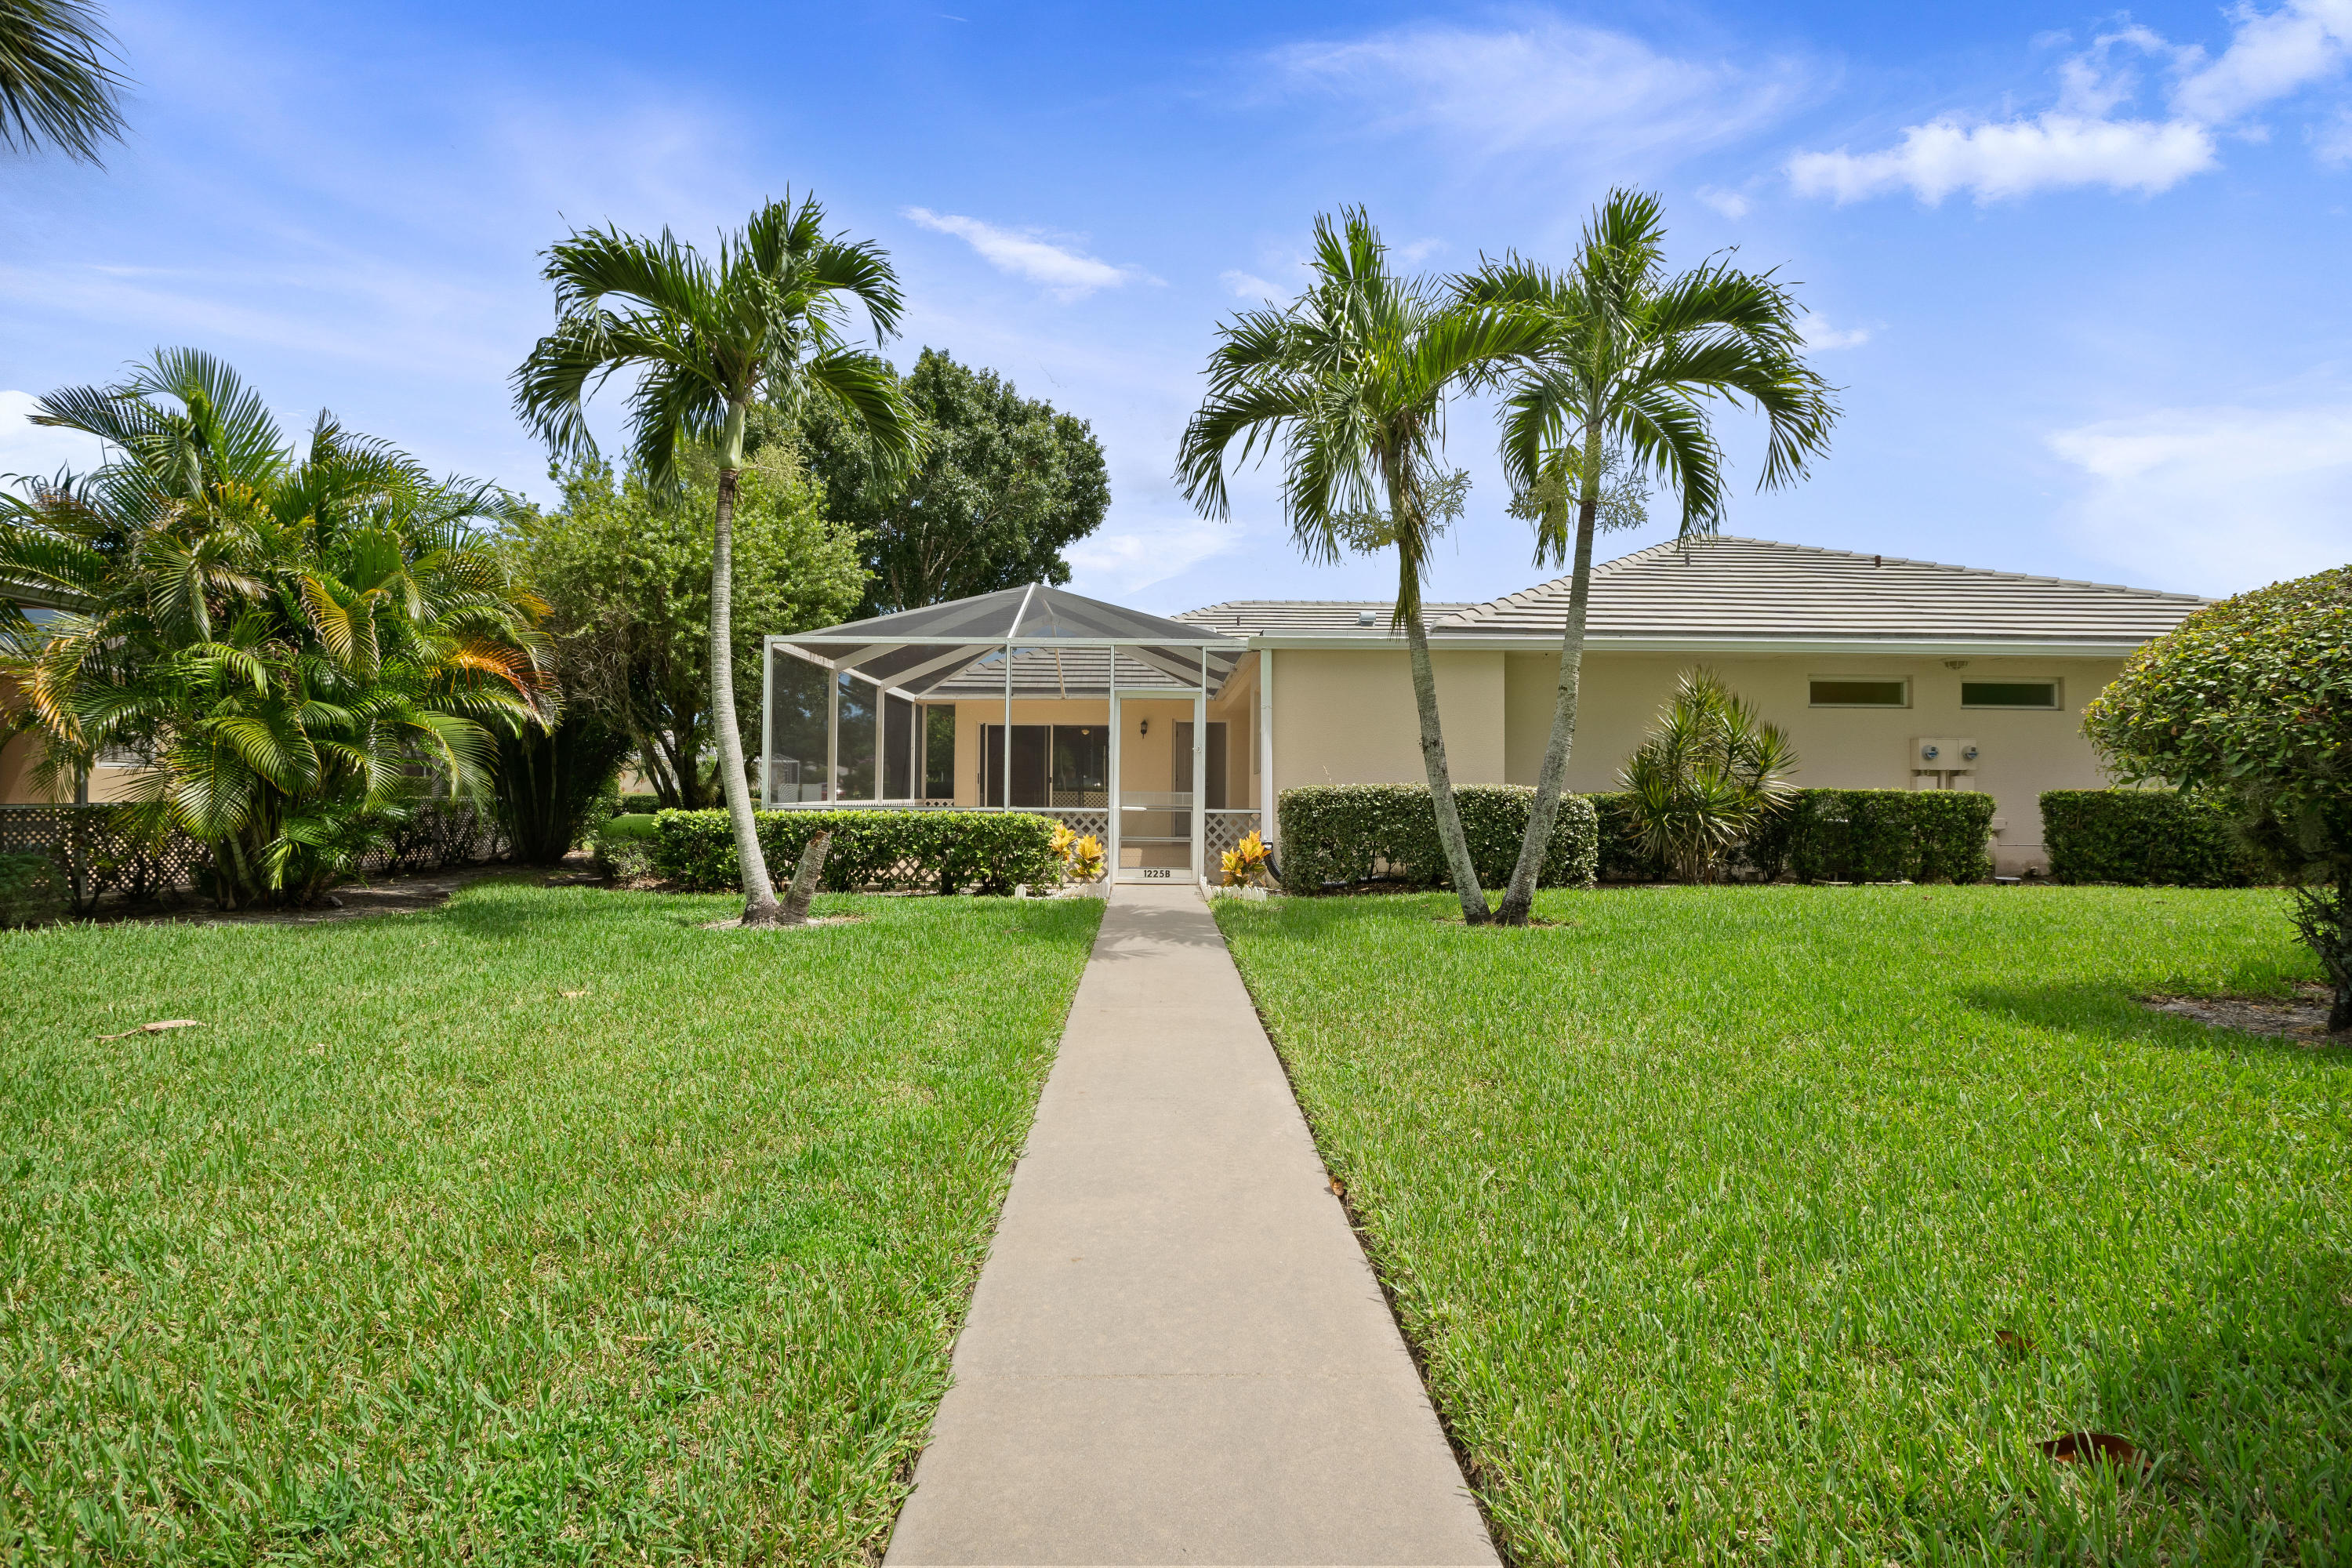 Home for sale in THE LAKES AT ST LUCIE WEST Saint Lucie West Florida